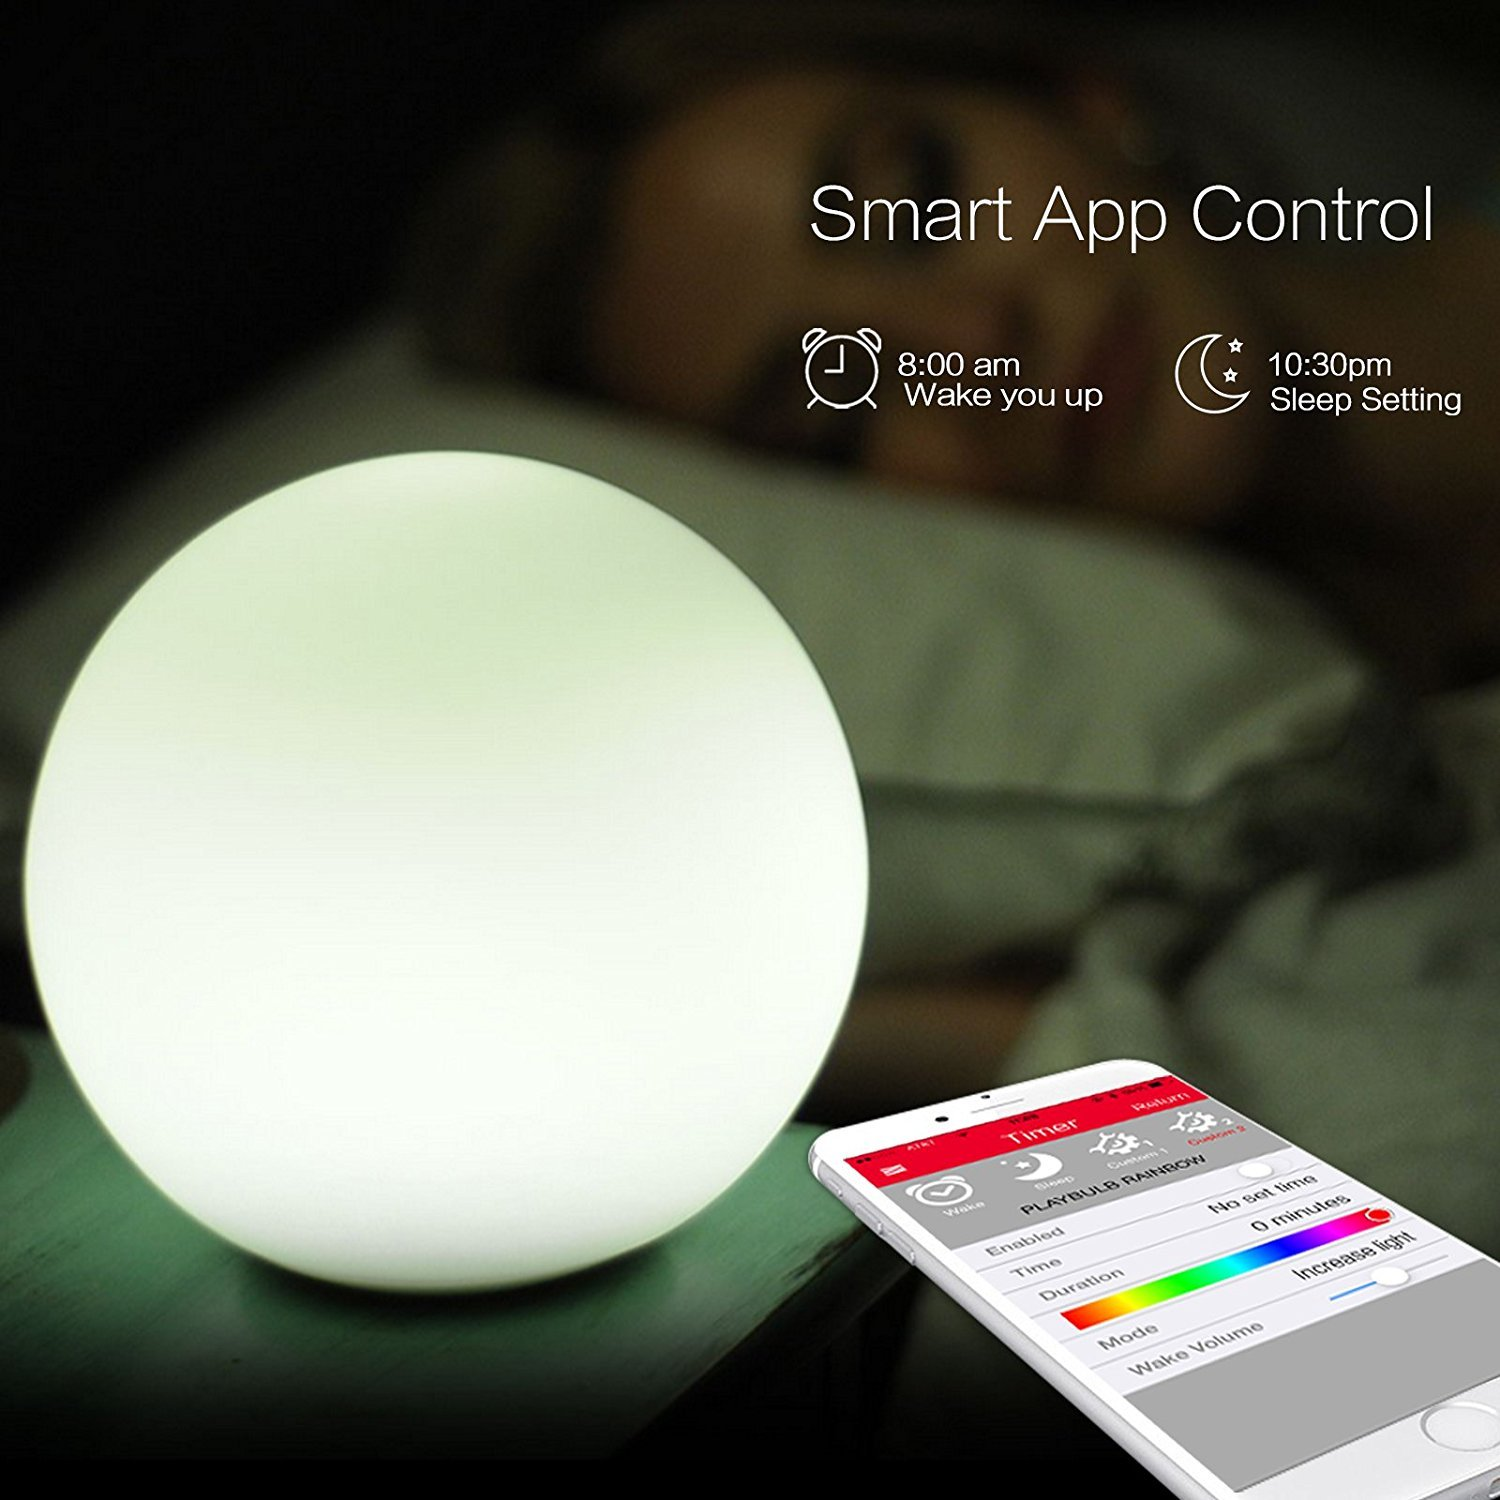 MIPOW PLAYBULB Sphere Bluetooth Smart Color Changing Night Light, Waterproof Touch Sensitive Dimmable LED Glass Orb Bulb with APP control, Wireless Charging Solution, Ideal for Home Bedroom Patio by MIPOW (Image #4)